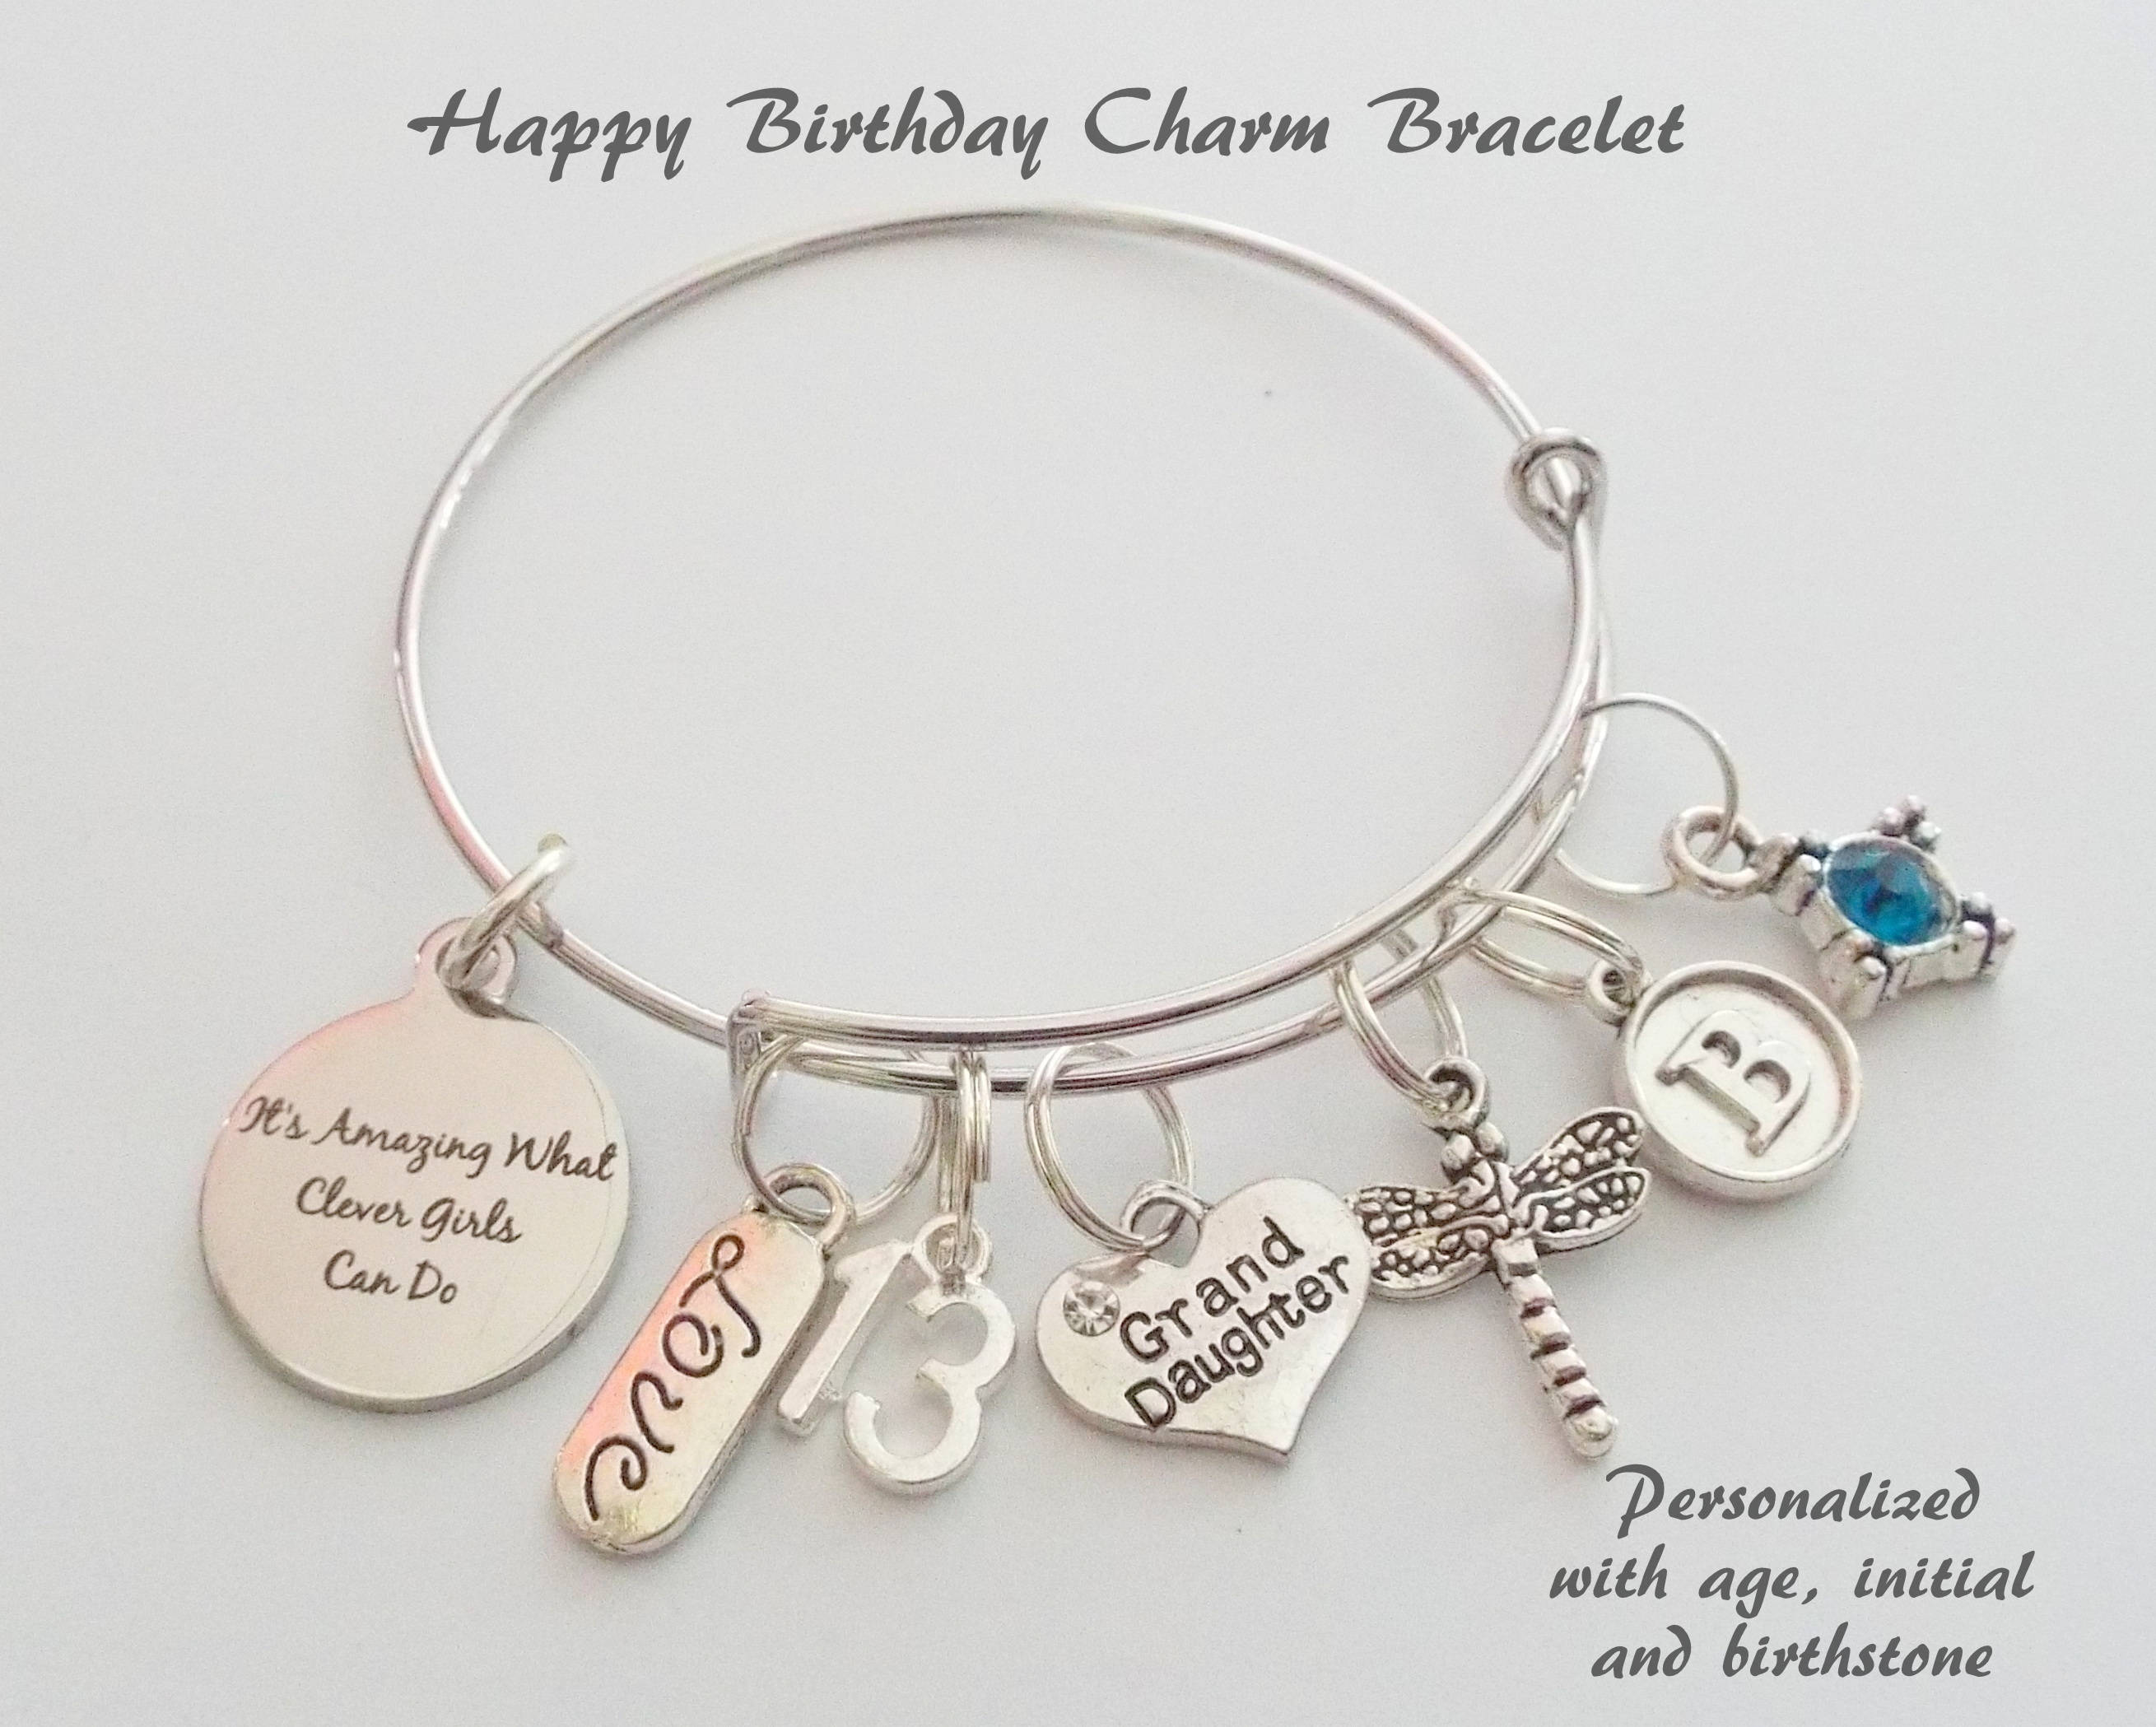 Birthday Gift For 13 Year Old Girl Custom Charm Bracelet To Granddaughter From Grandmother Gallery Photo